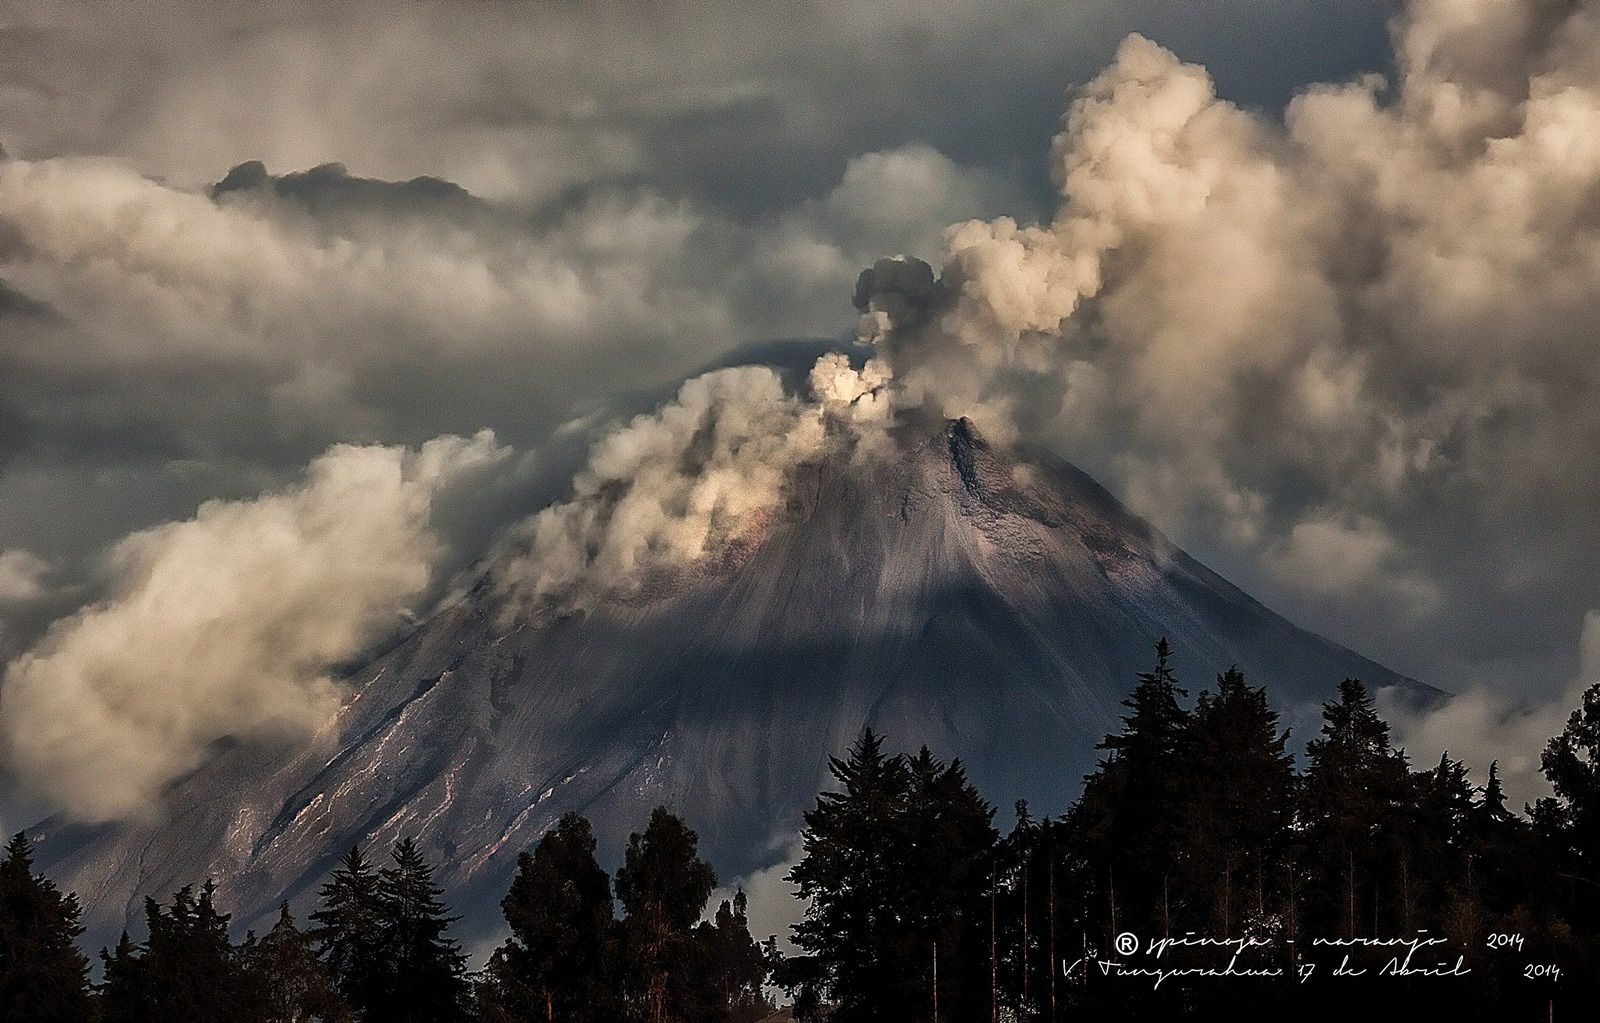 Tungurahua - 17.04.2014 - a volcano with panache ! - Photo Jose Luis Espinosa - Naranjo .